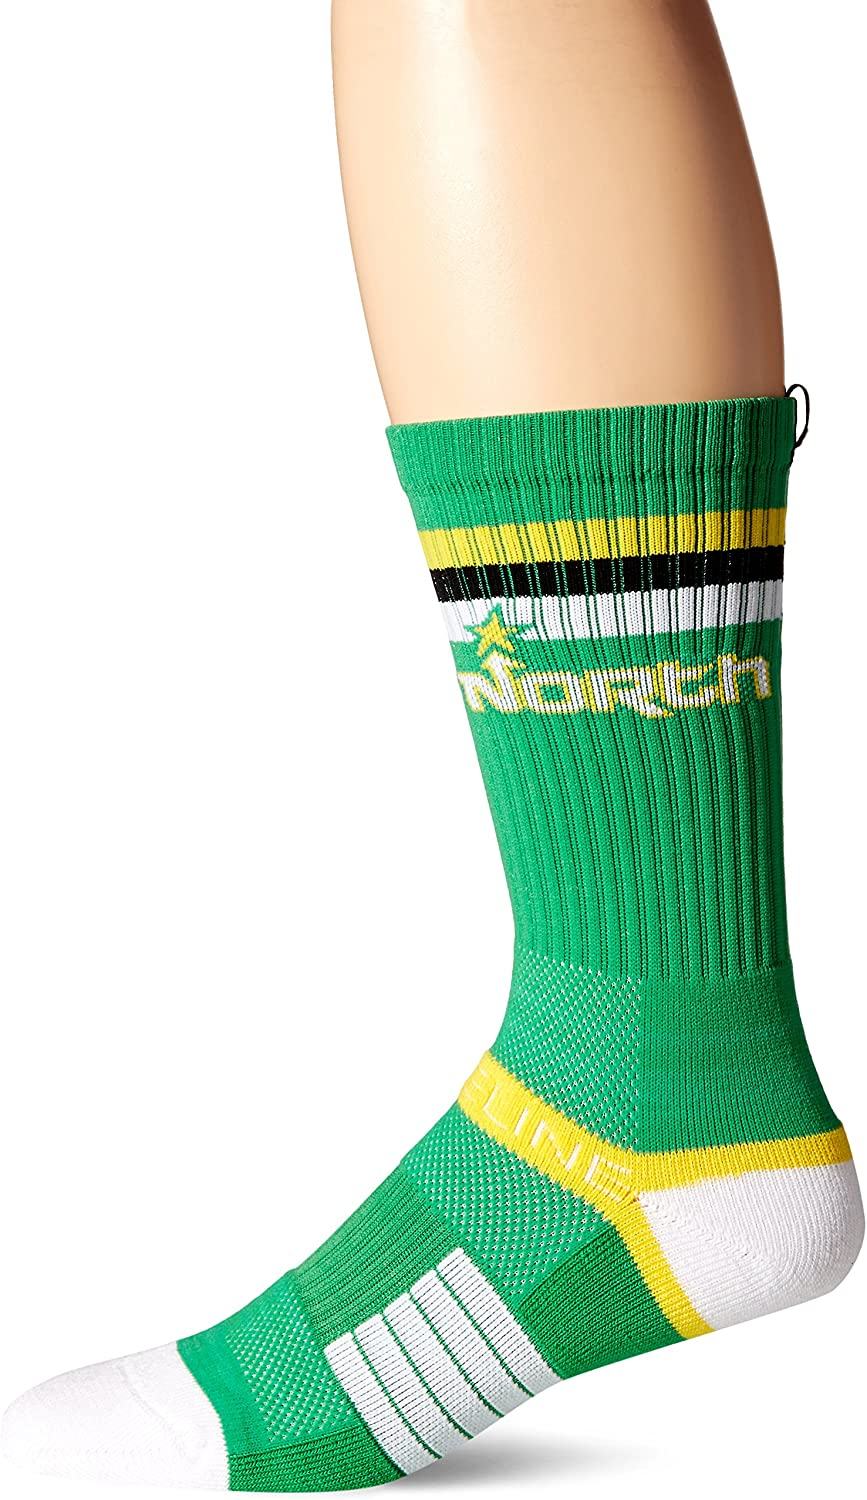 NHL Minnesota Wild Adult Retro North Strapped Fit 2.0 City Line Socks, One Size, Green